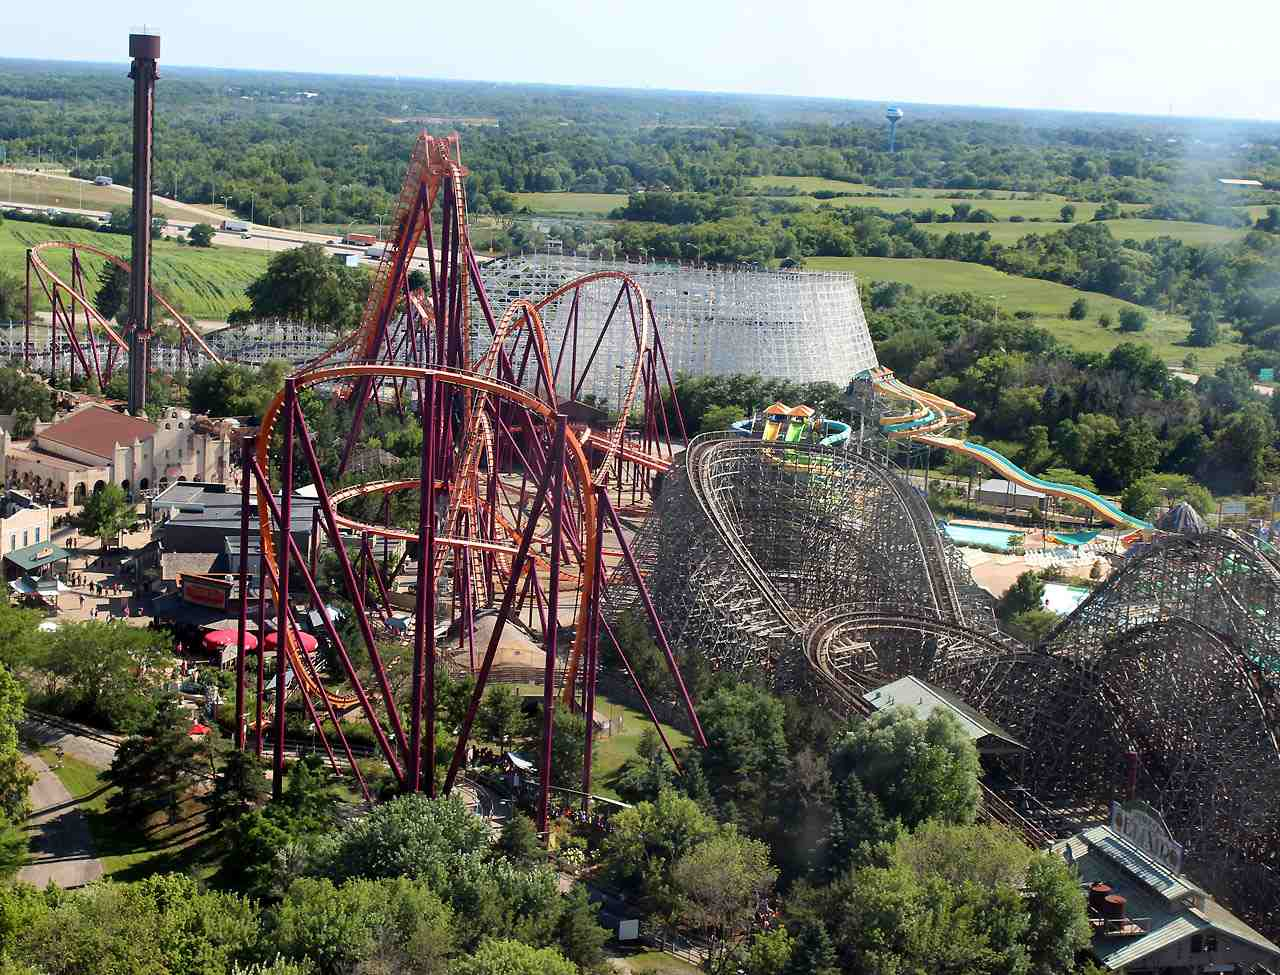 The Differences Between Theme Parks and Amusement Parks